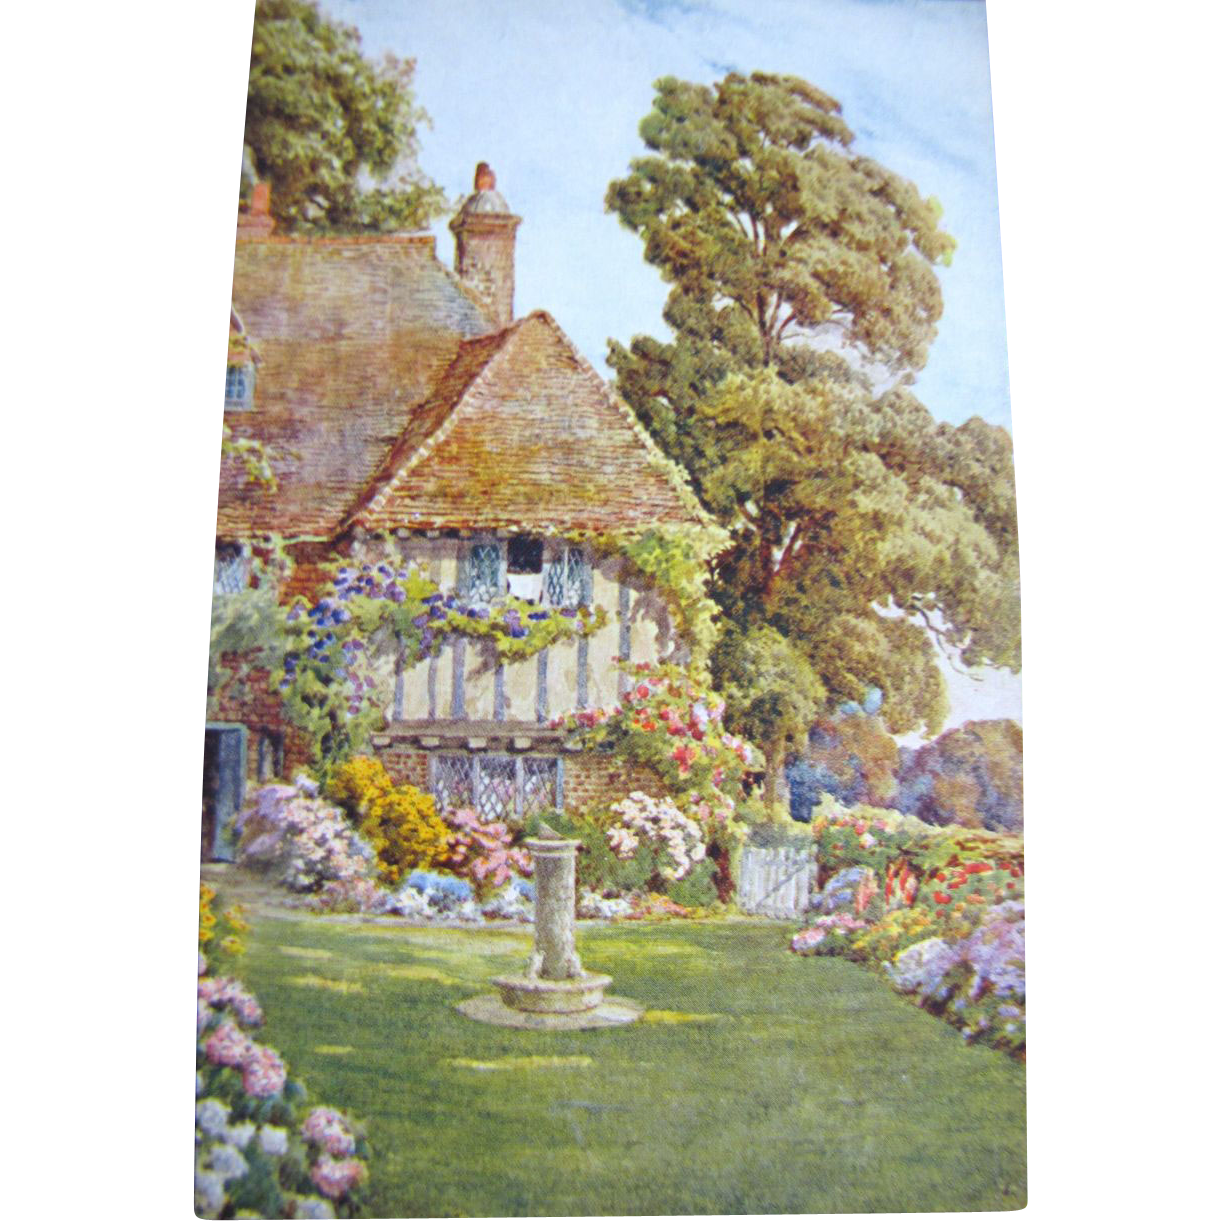 1885, An English House & Garden, Postcard Published by J Salmon, 1885